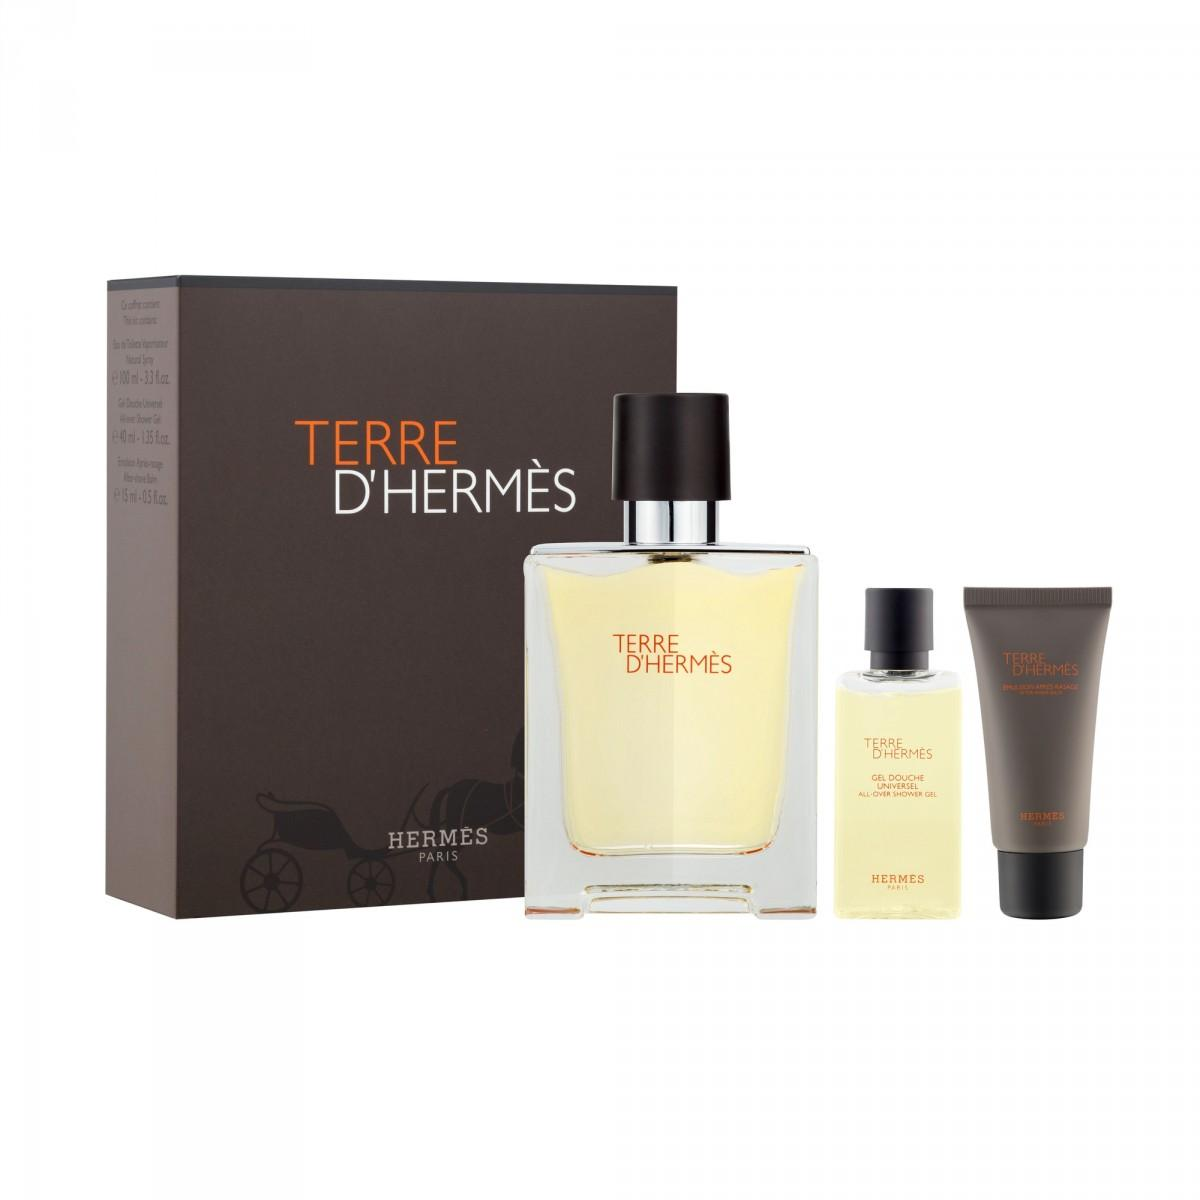 844b5a569ab Set Terre d Hermès Eau de Toilette 100 ML + Shower Gel + Surprise ...